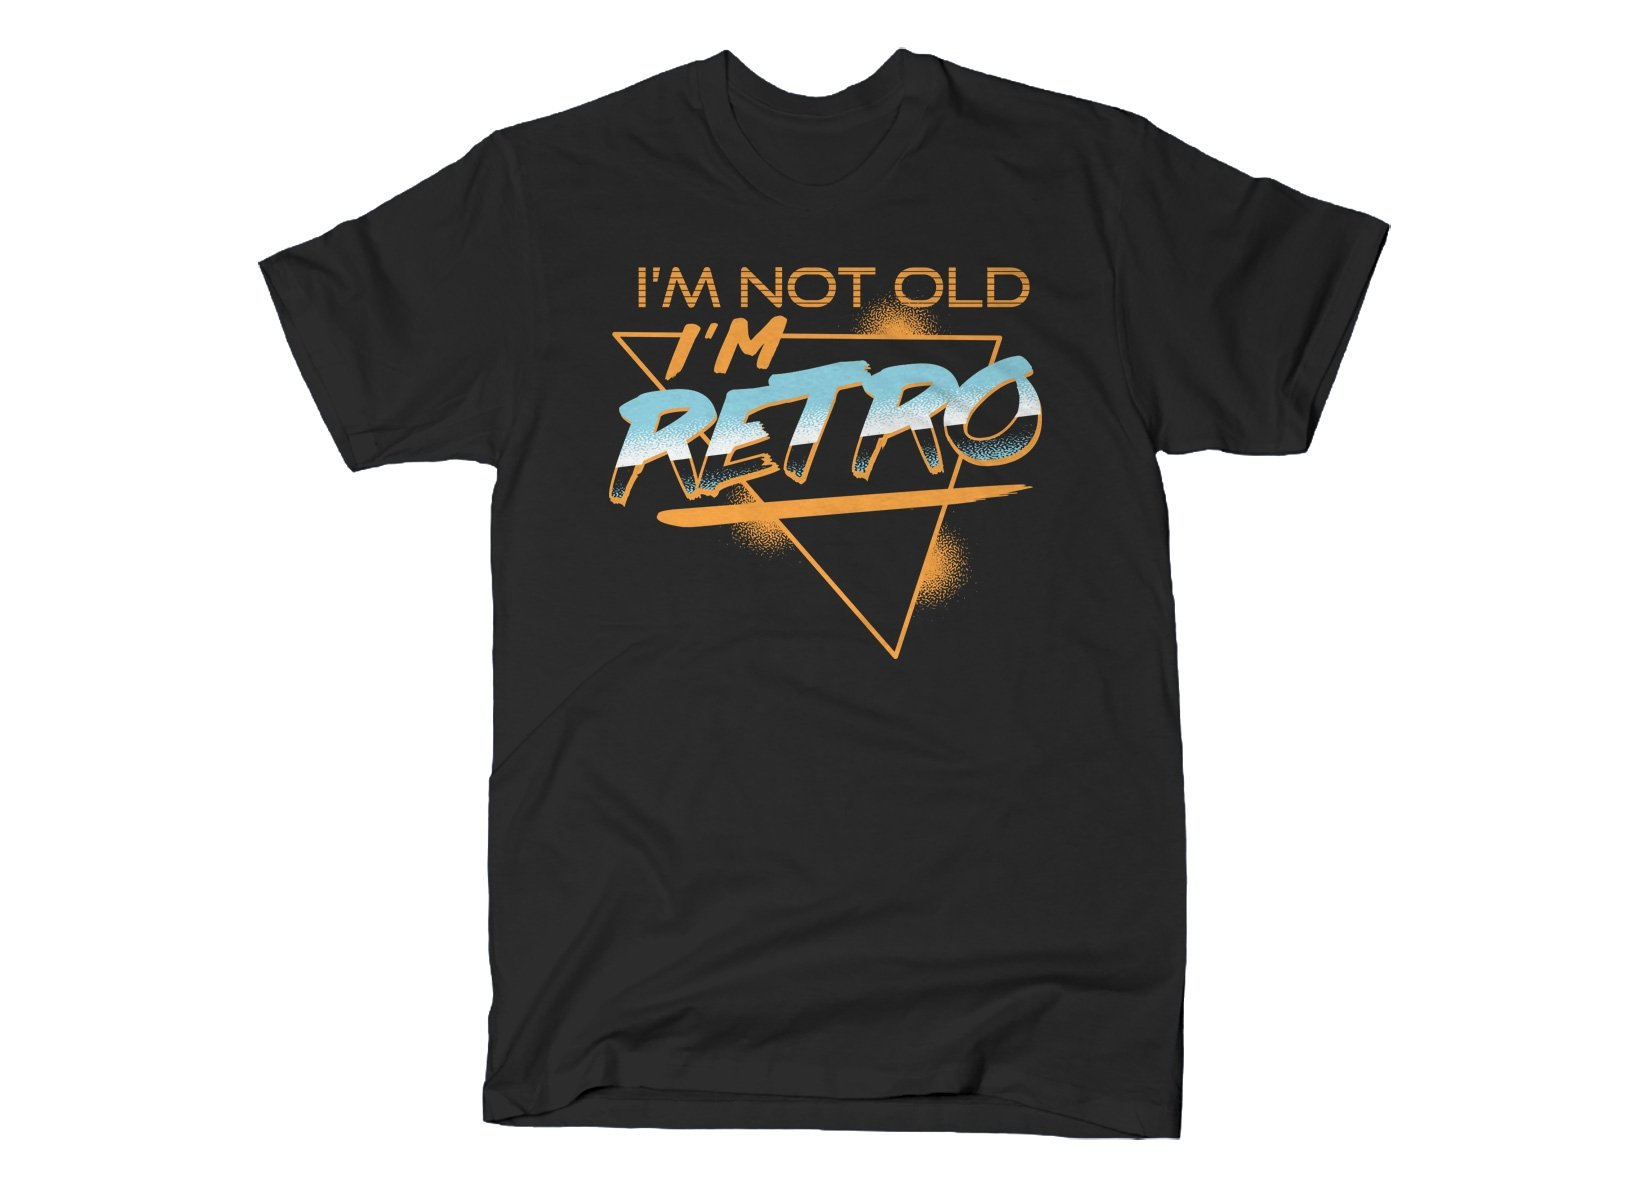 I'm Not Old I'm Retro on Mens T-Shirt